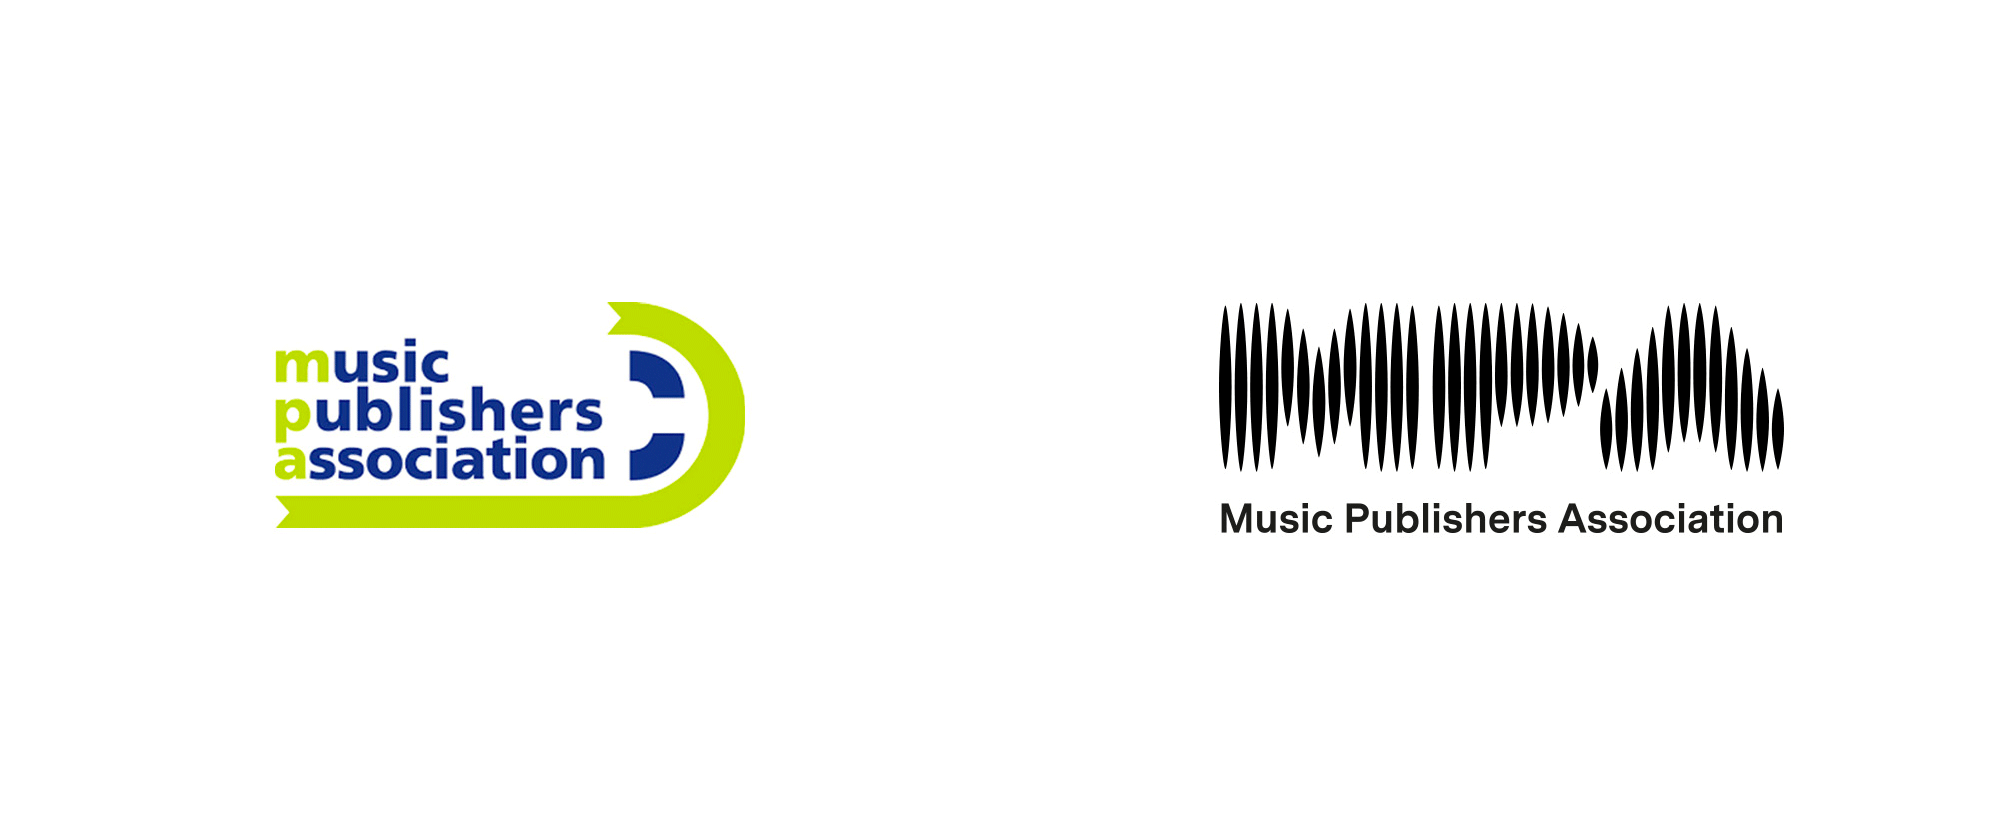 New Logo and Identity for Music Publishers Association by The Playground